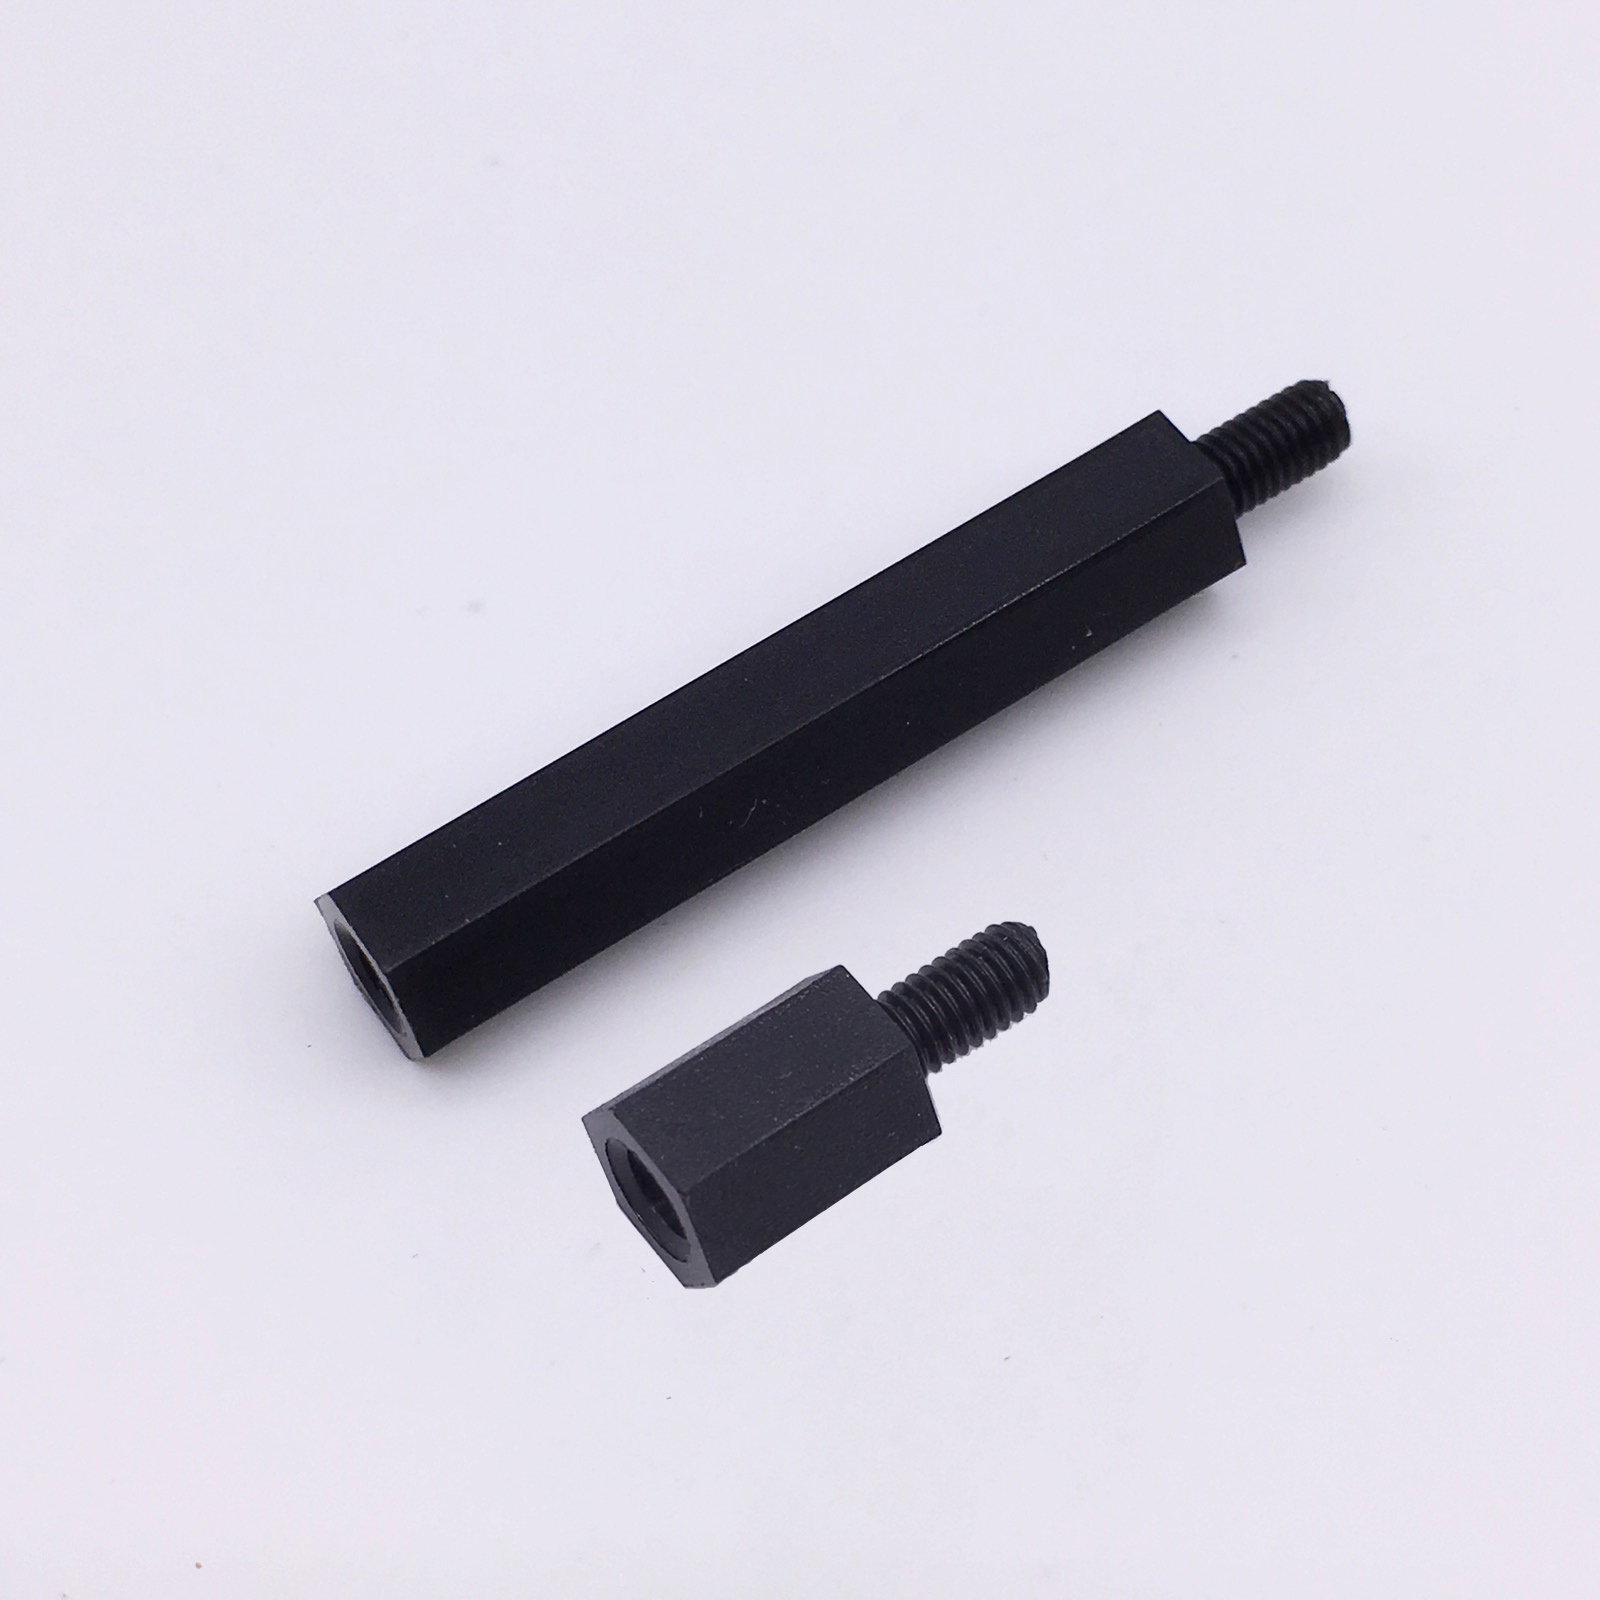 M3 Spacers PCB Standoff Hex Nylon Black Screw Nut Male to Female Plastic Parts